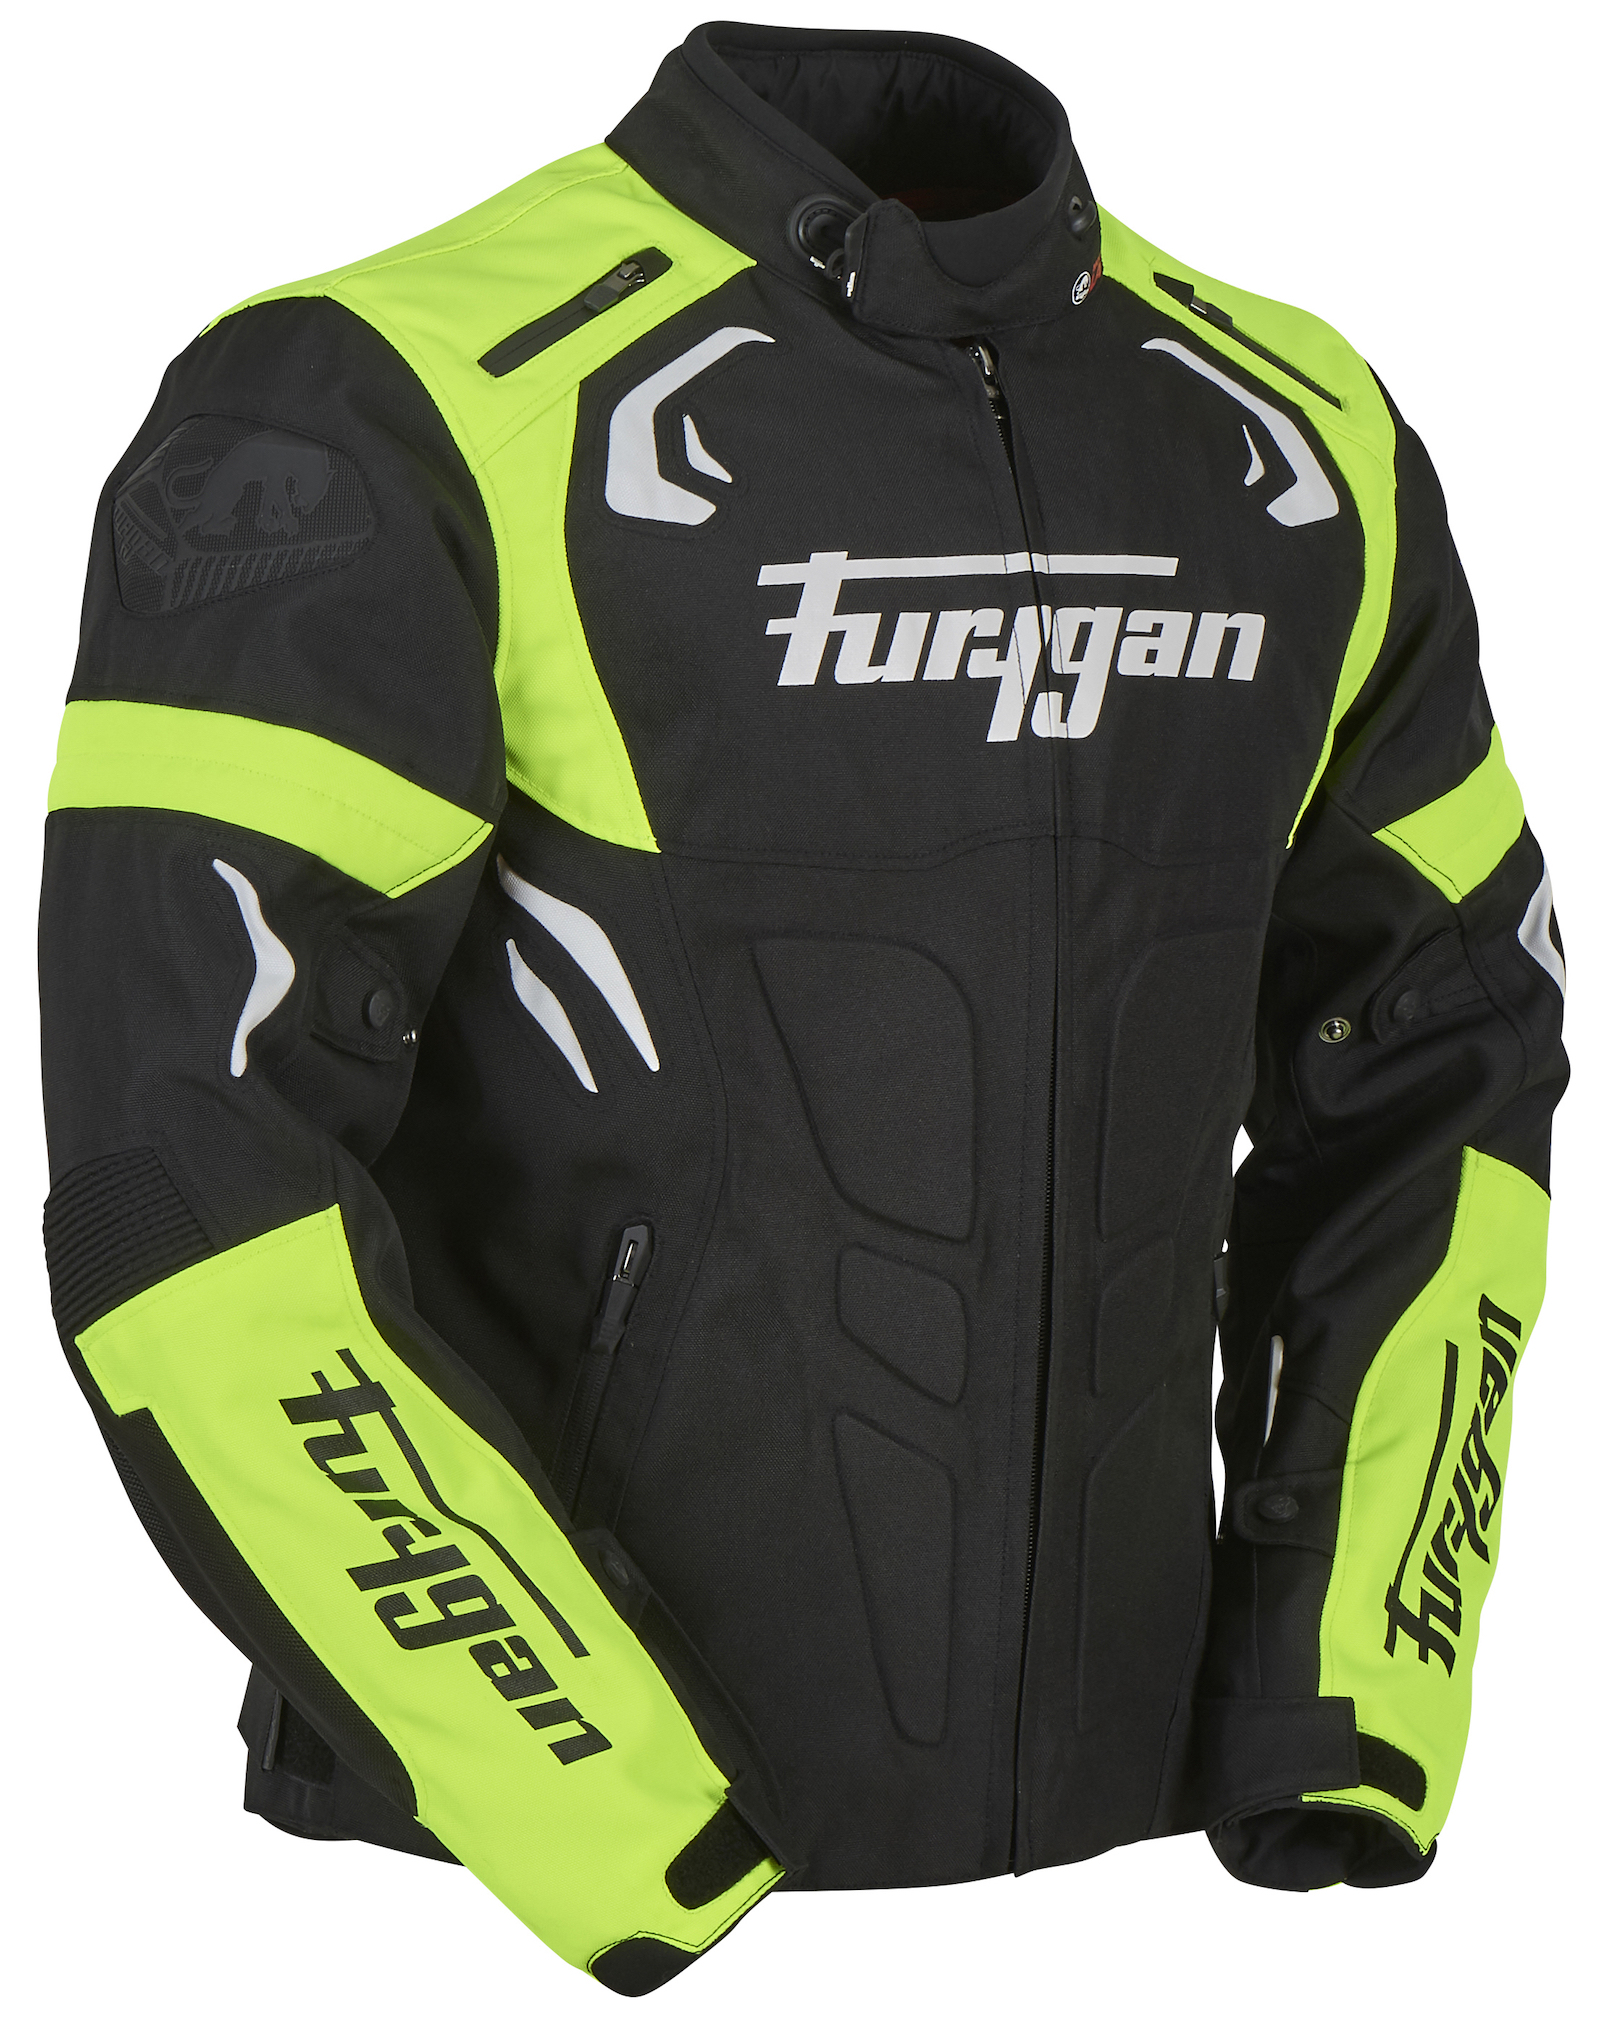 Furygan Blast jacket